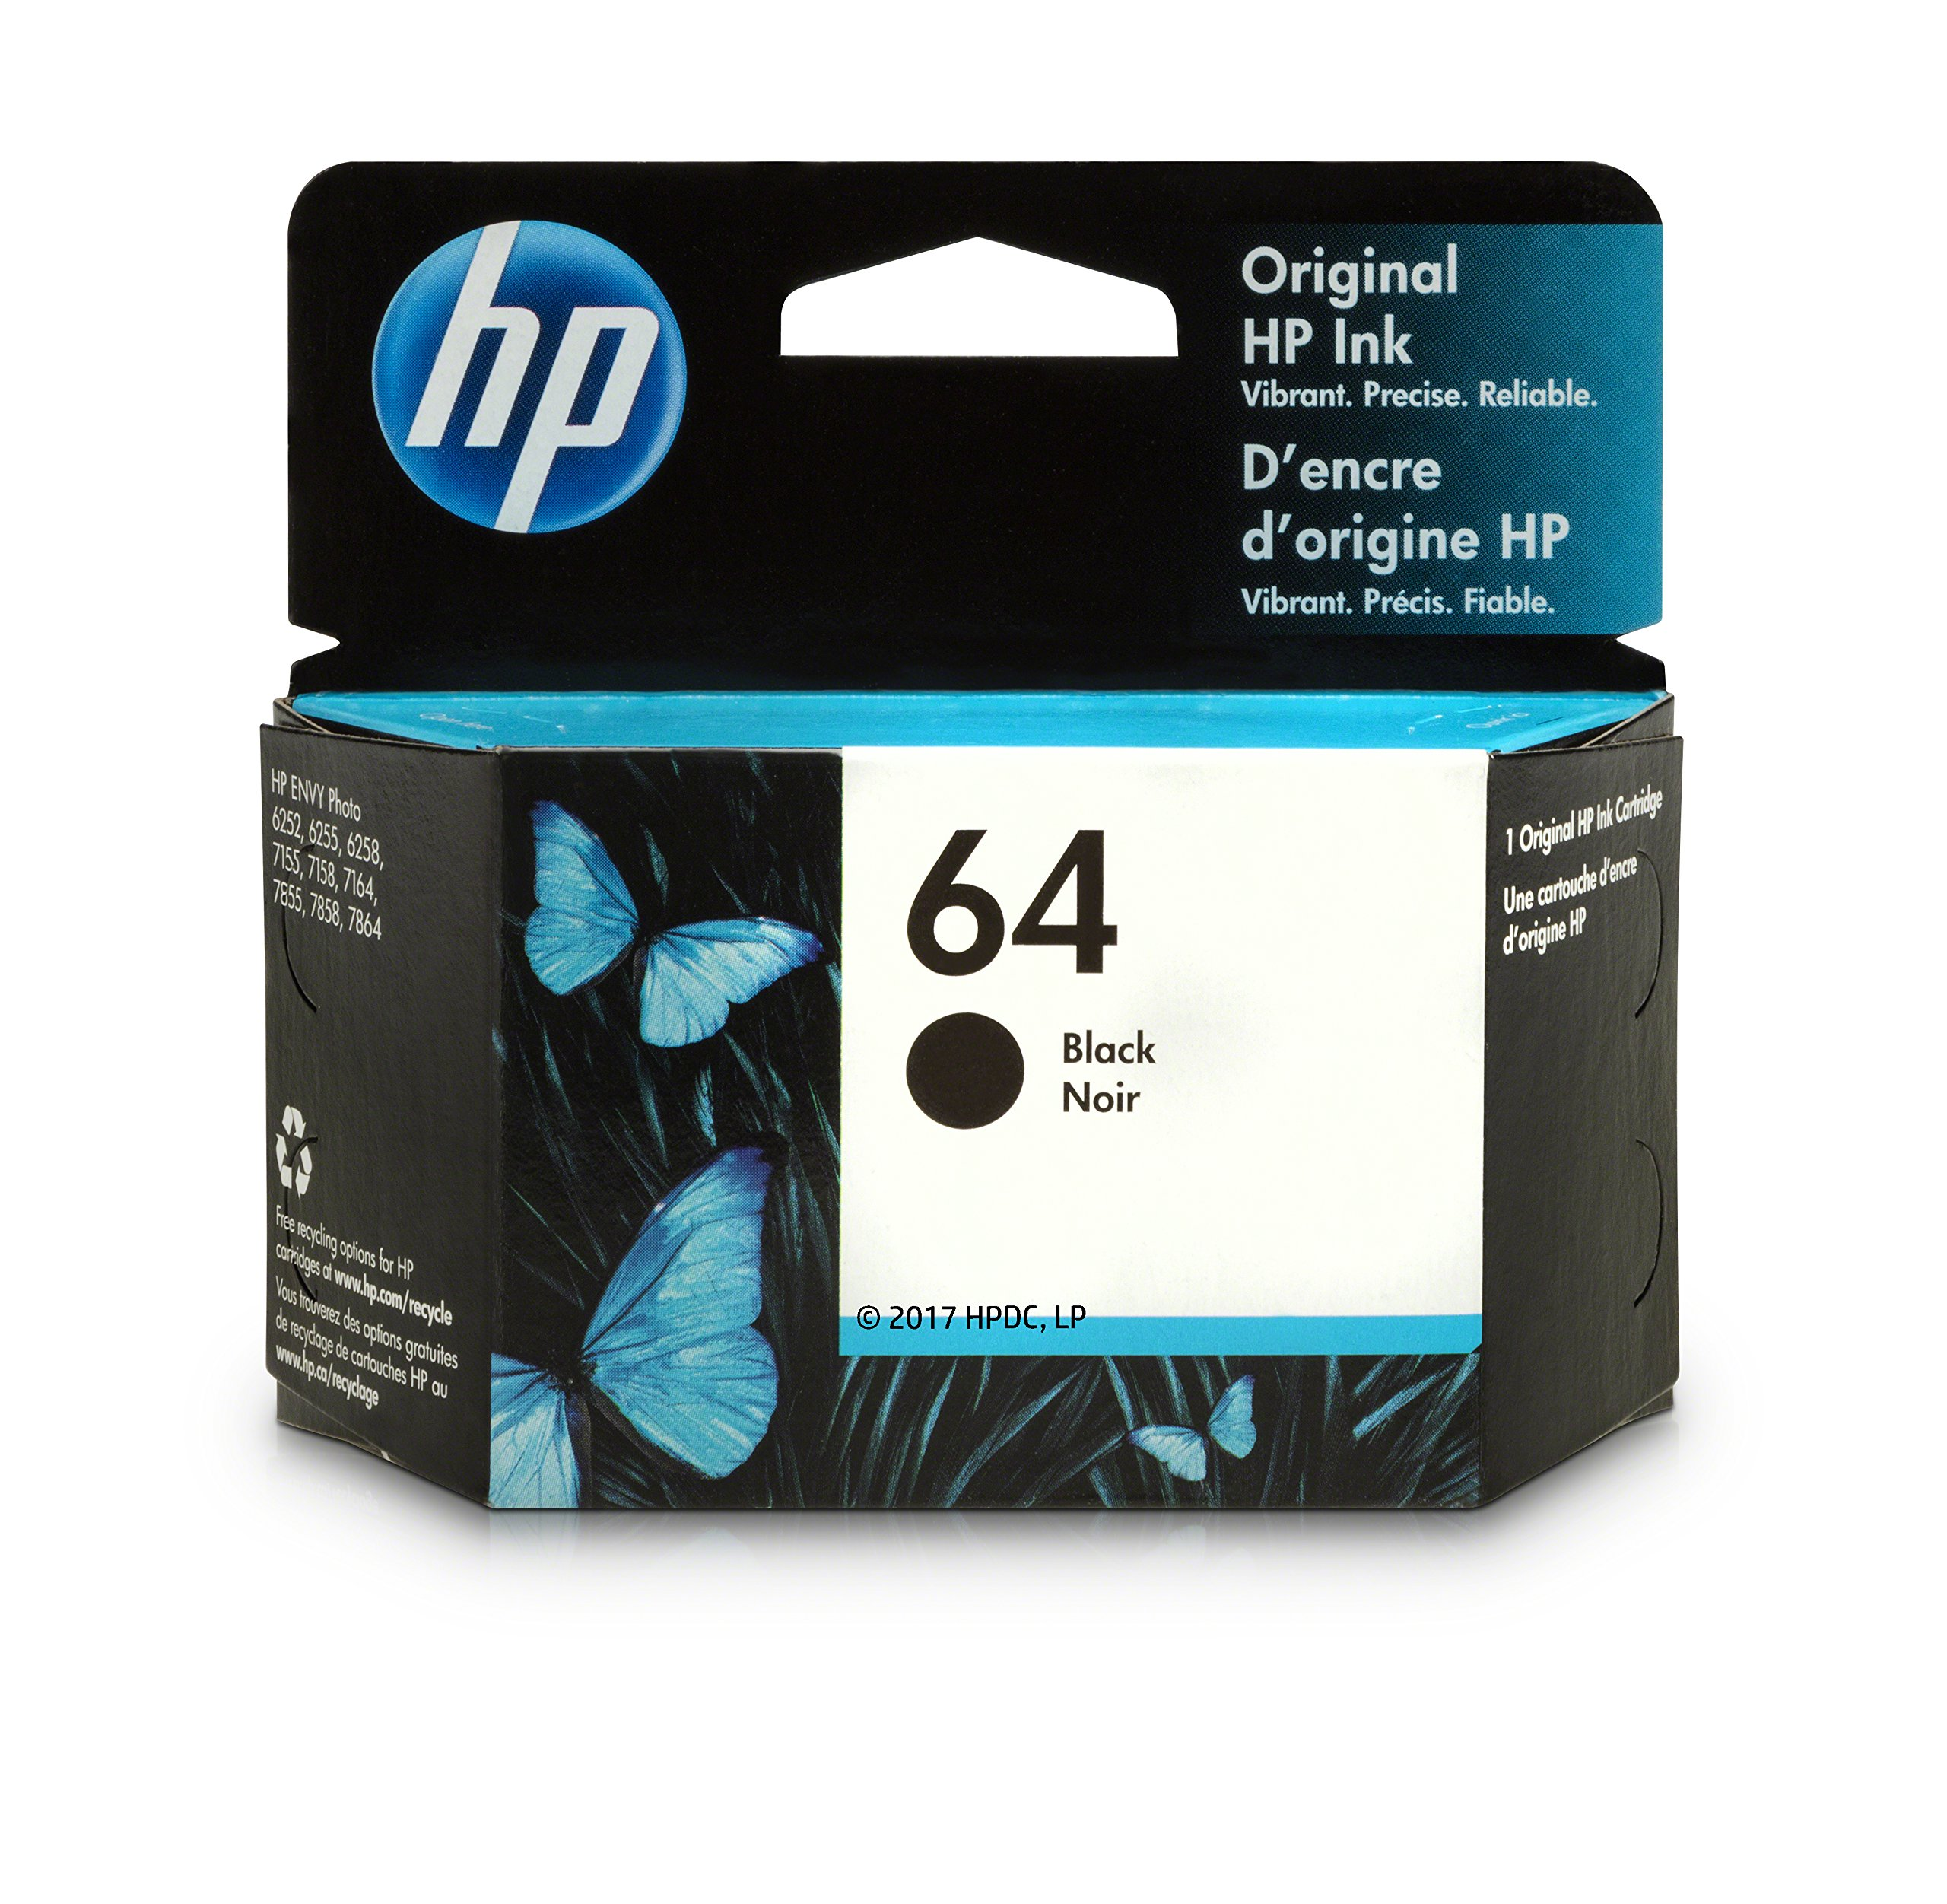 HP 64 Black Original Ink Cartridge (N9J90AN) for HP Envy Photo 6252 6255 6258 7155 7158 7164 7855 7858 7864 HP Envy 5542